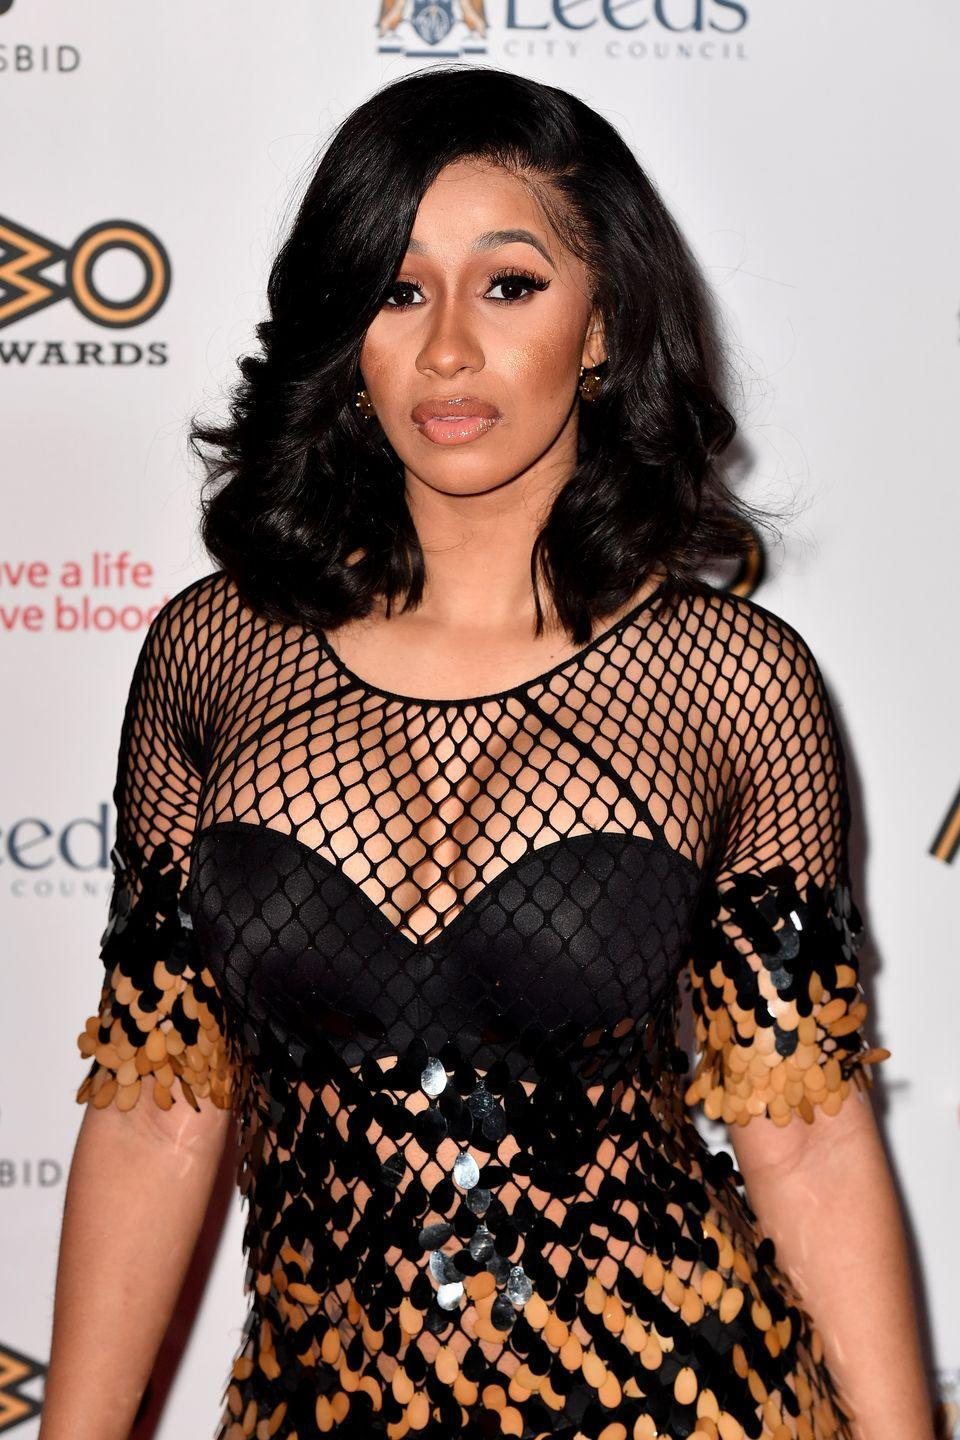 """<p>The superstar has been vocal about her choice to undergo various plastic surgery treatments in the past. In addition to a breast augmentation, Cardi B <a href=""""https://www.youtube.com/watch?v=m9_Q3KVVu2k"""" rel=""""nofollow noopener"""" target=""""_blank"""" data-ylk=""""slk:admitted in an interview"""" class=""""link rapid-noclick-resp"""">admitted in an interview</a> to getting illegal injections in her butt. """"In order to get lipo, where they put the fat transfer in your ass and it gets bigger, you need to have fat. I did not have no type of fat,"""" she said. """"But I was desperate to have a bigger ass.""""</p>"""